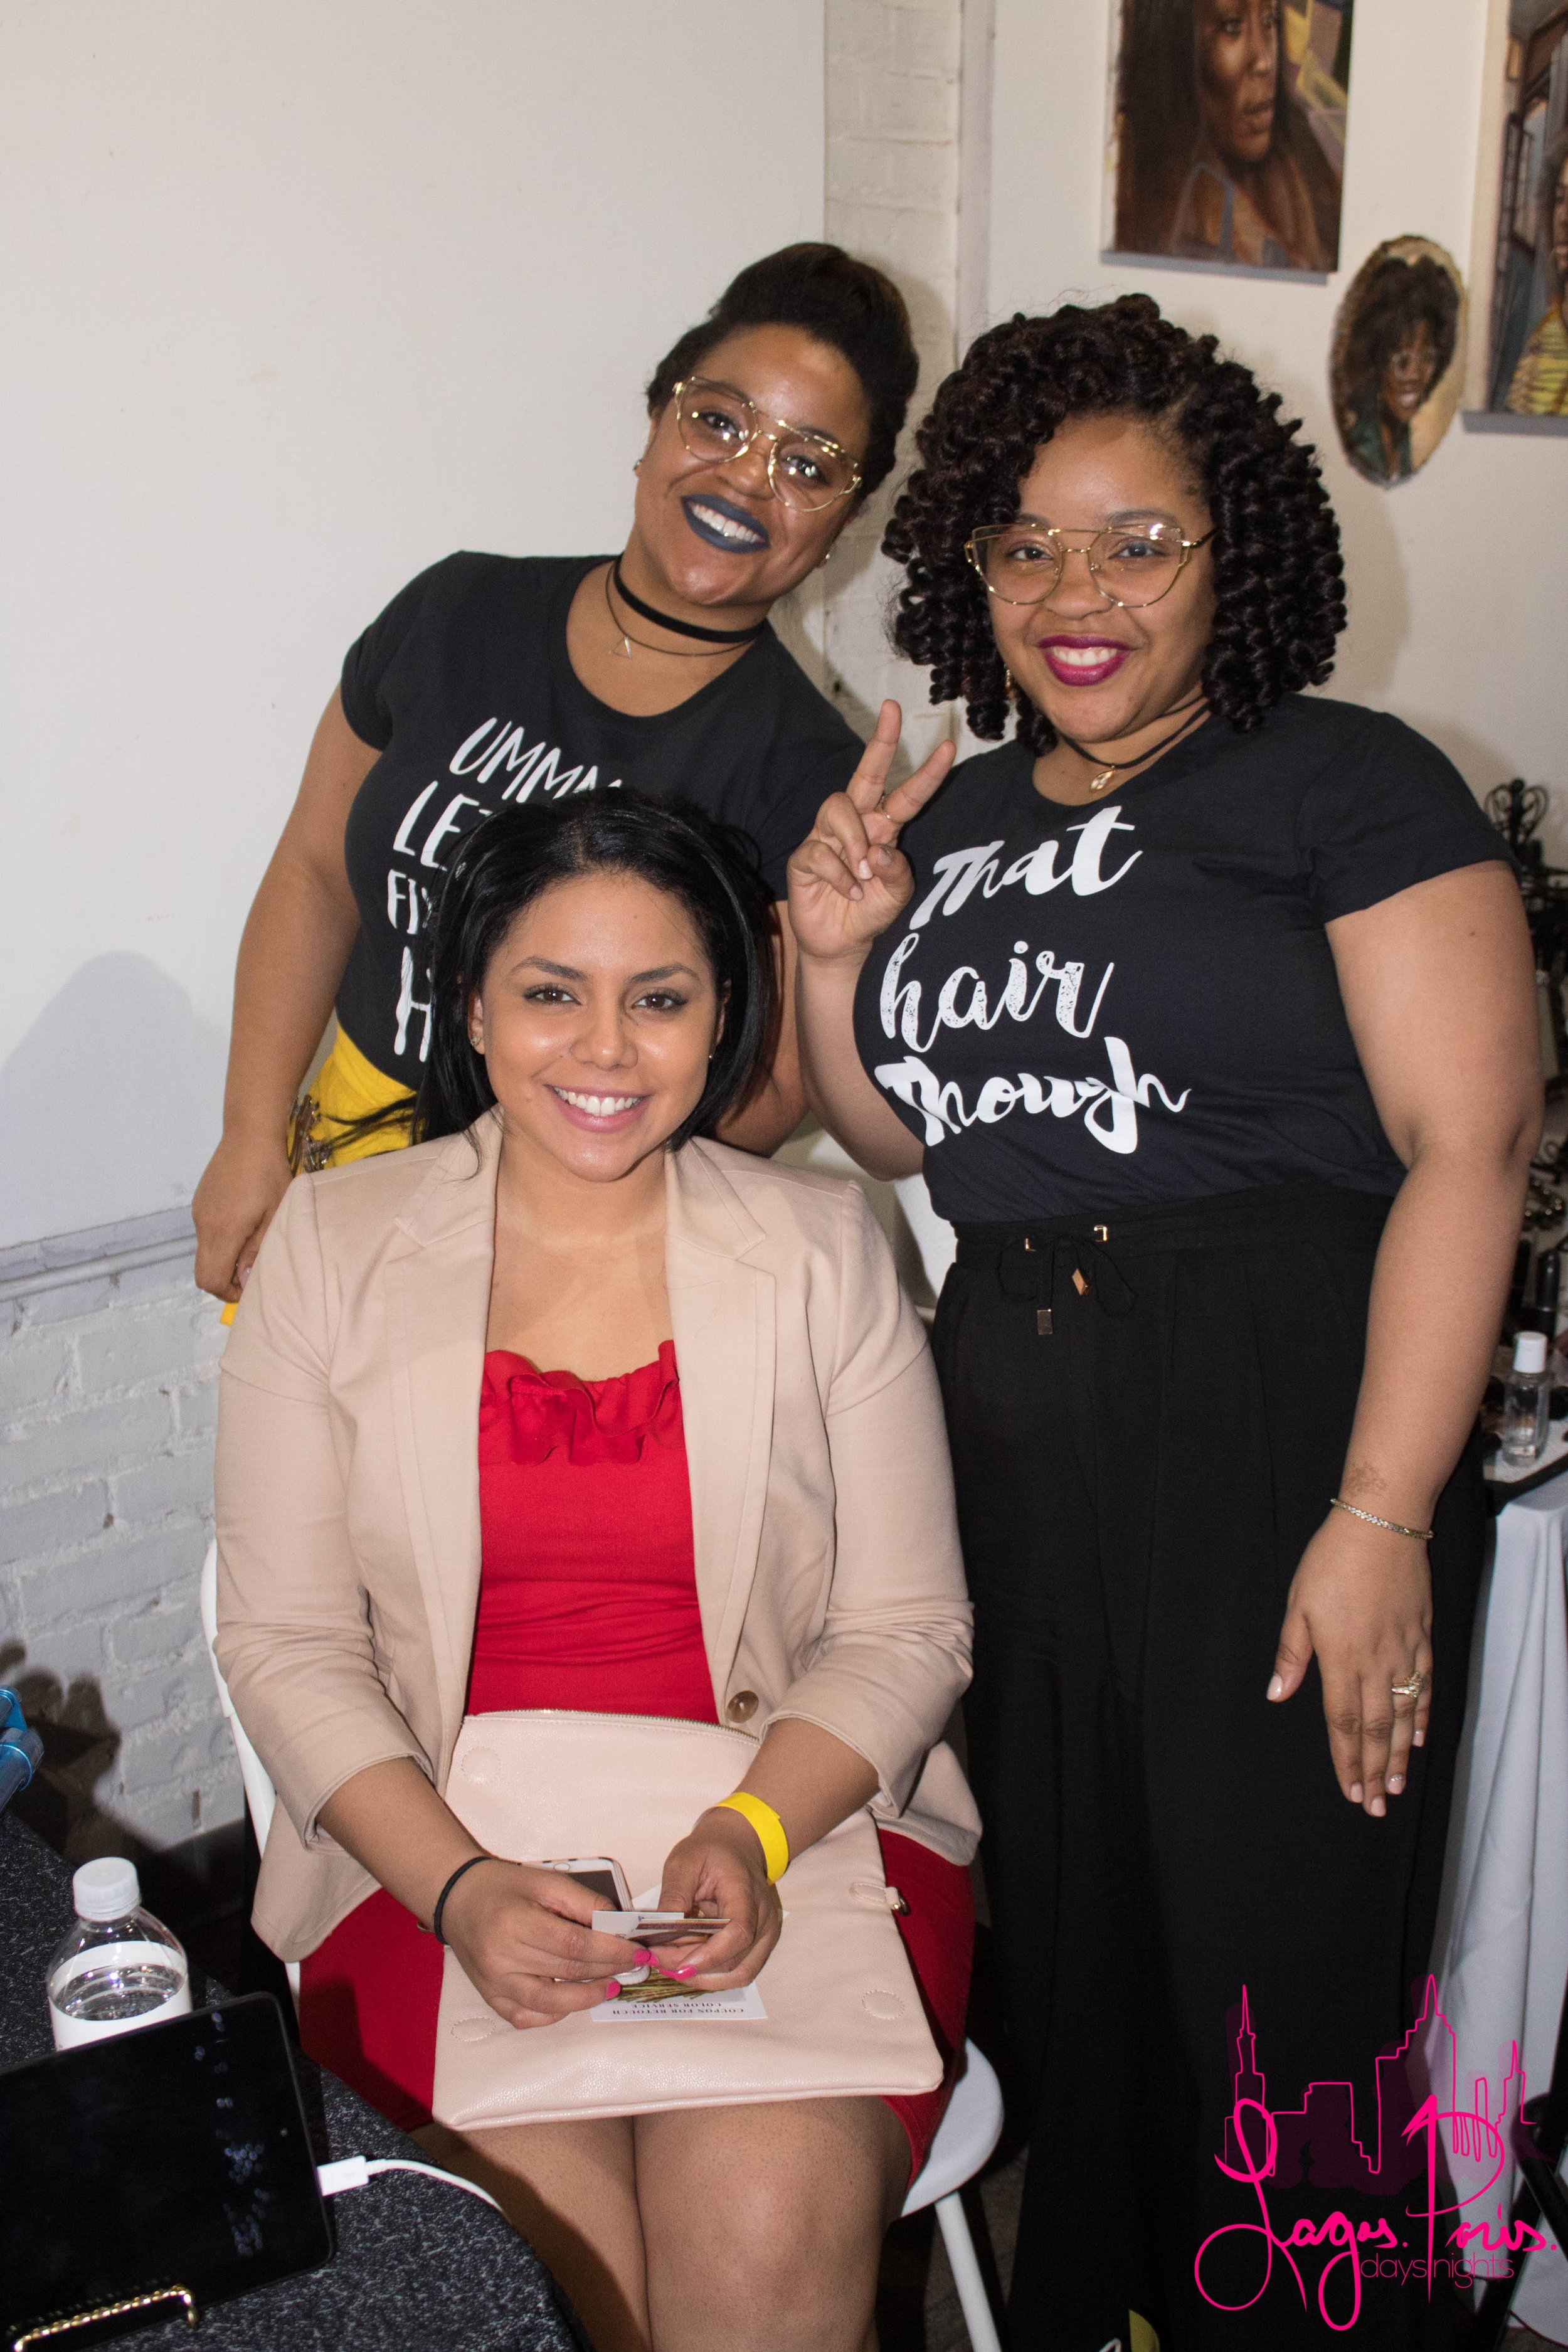 The ladies of Bobbi's Hair provided live hair styling services.